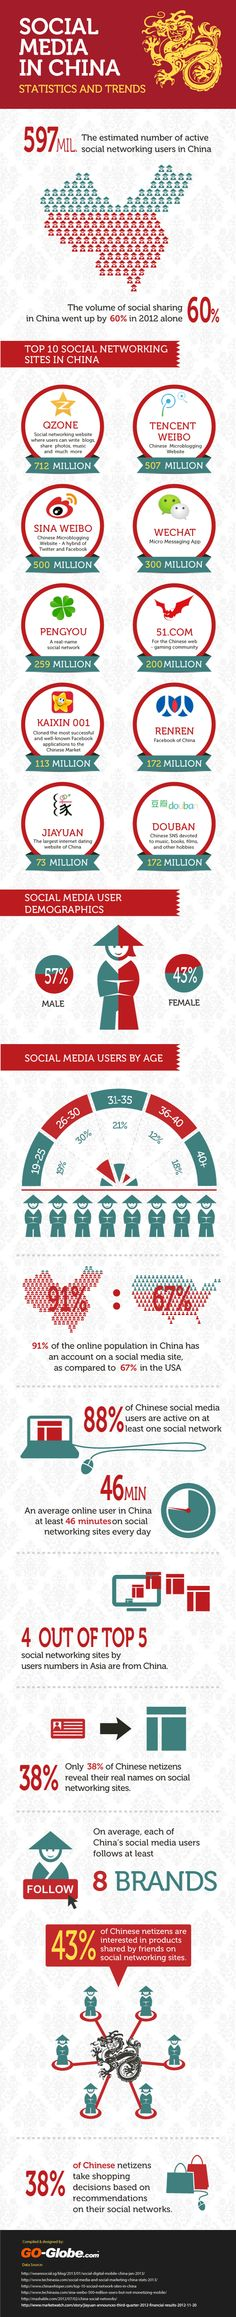 Social Media In China – Statistics and Trends Infographic